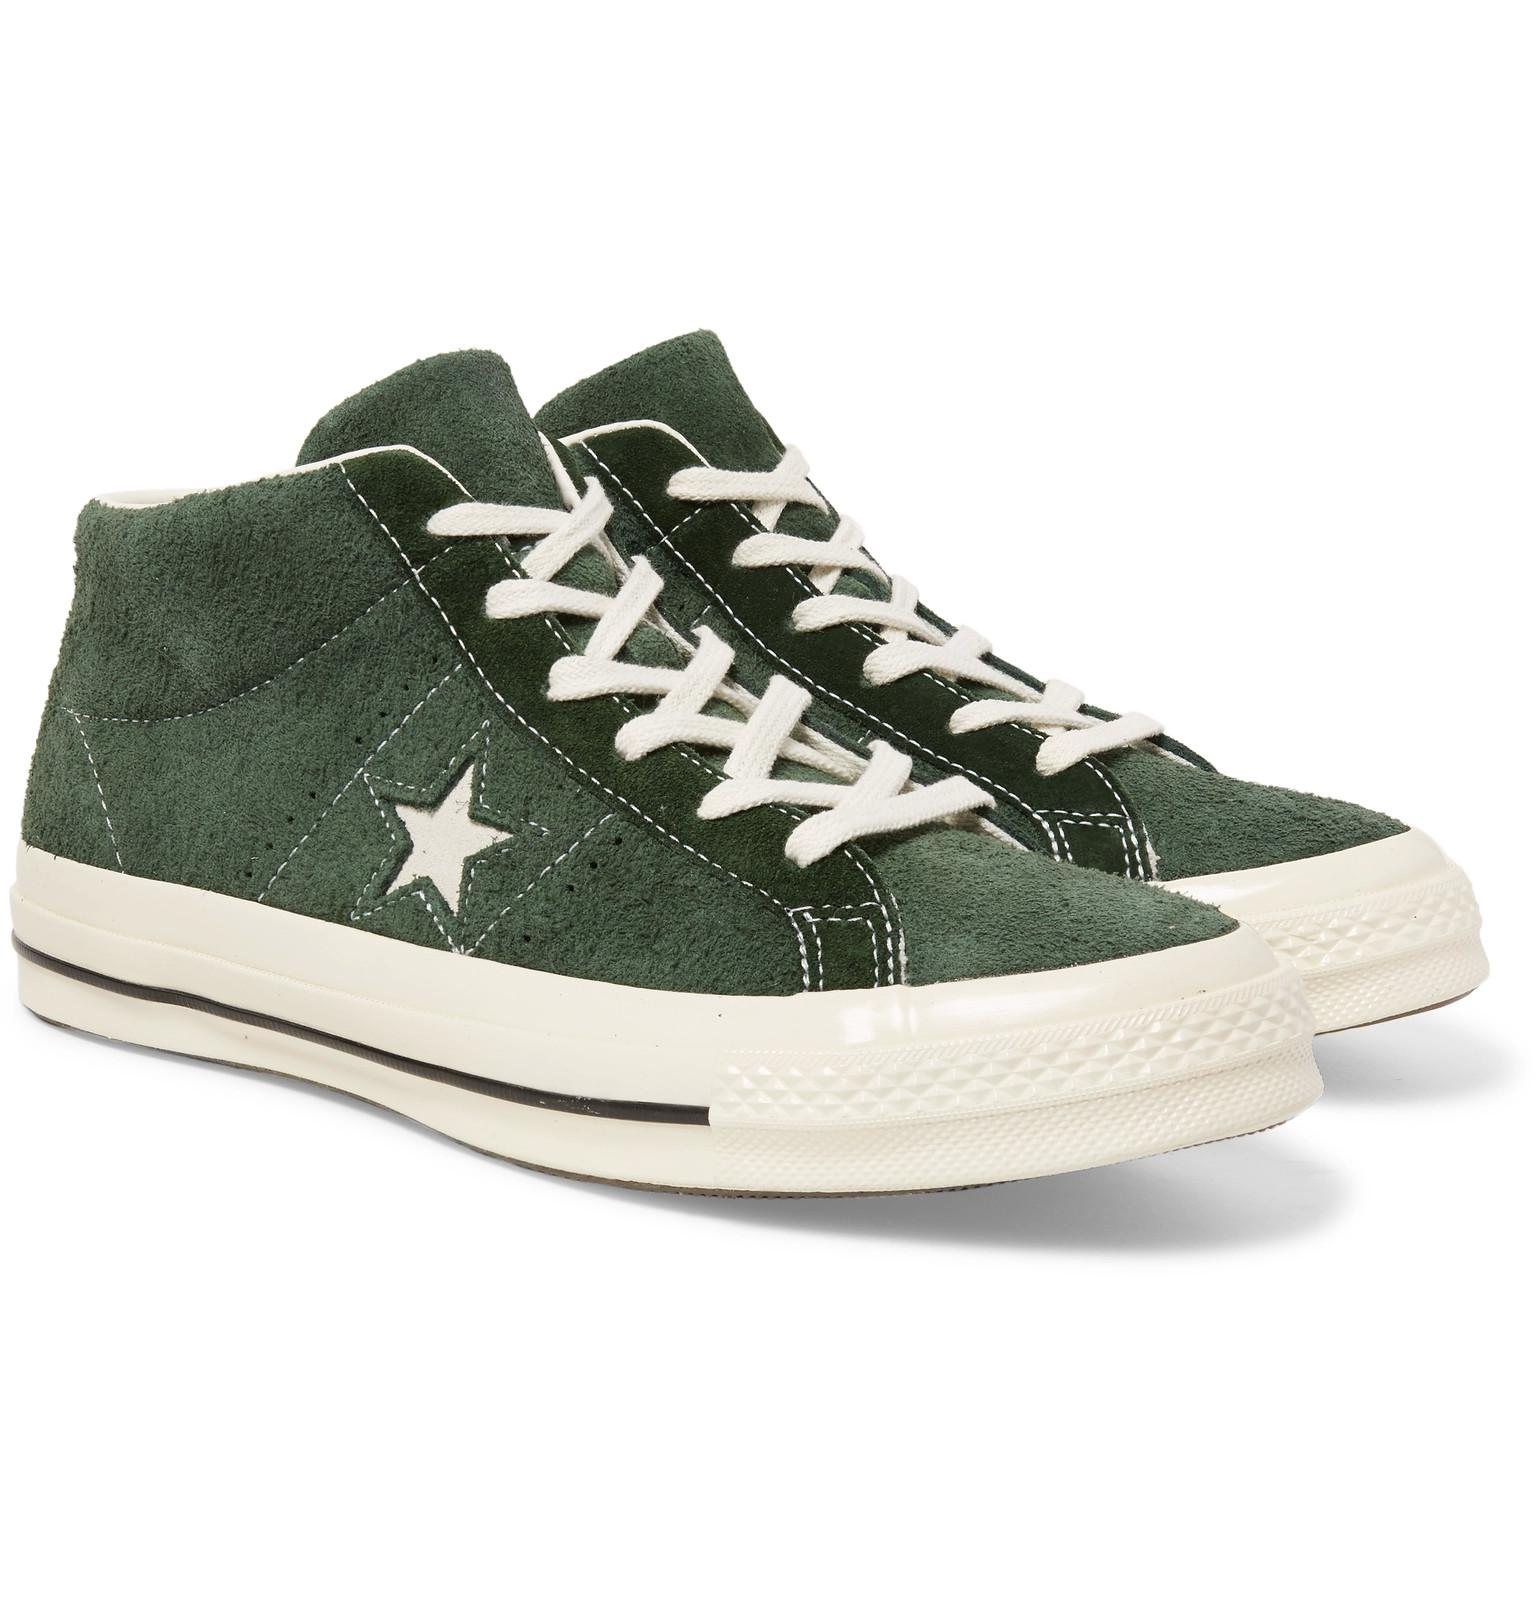 a649305369 Converse 1974 One Star Suede Sneakers in Green for Men - Lyst